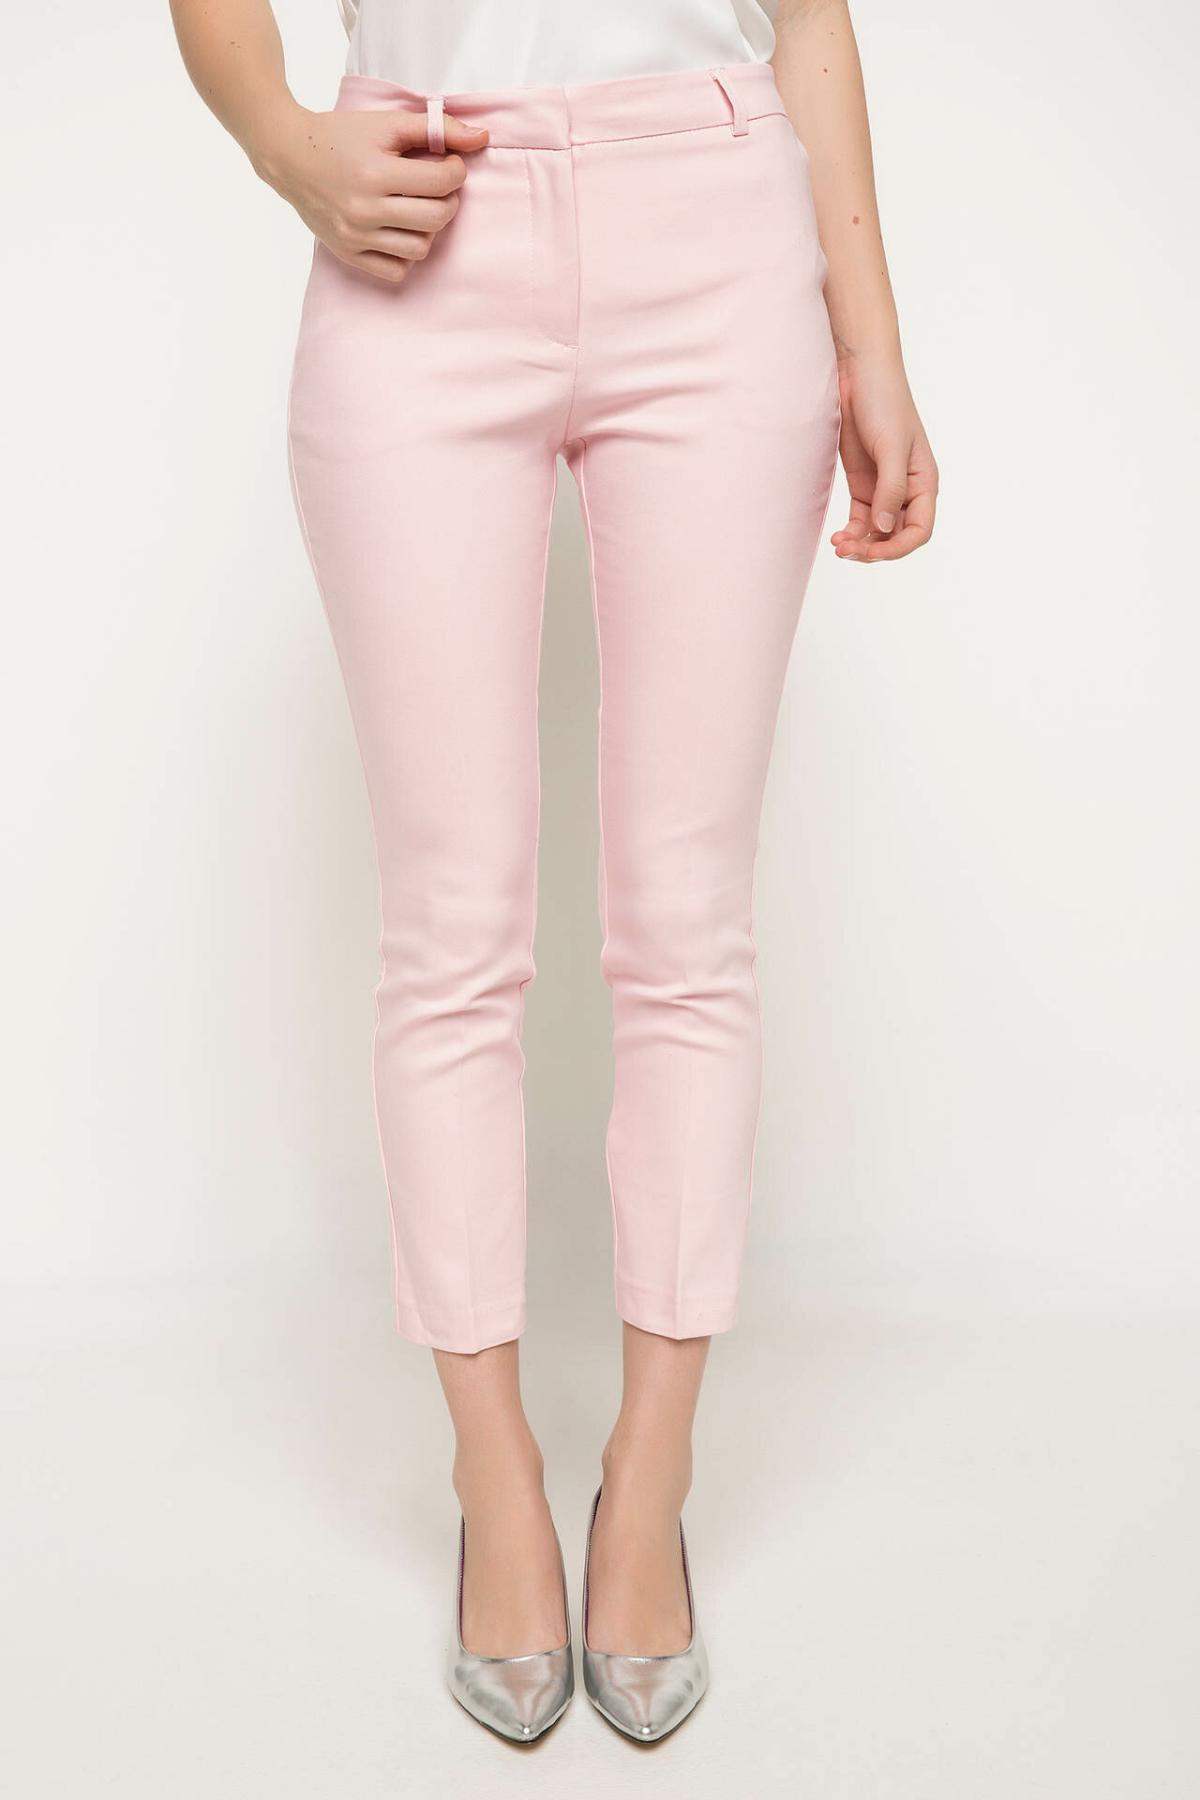 DeFacto Women Spring Ninth Skinny Pants Women Casual Mid-waist Long Pants Female Bottoms Women Pink Trousers-I5291AZ18SP